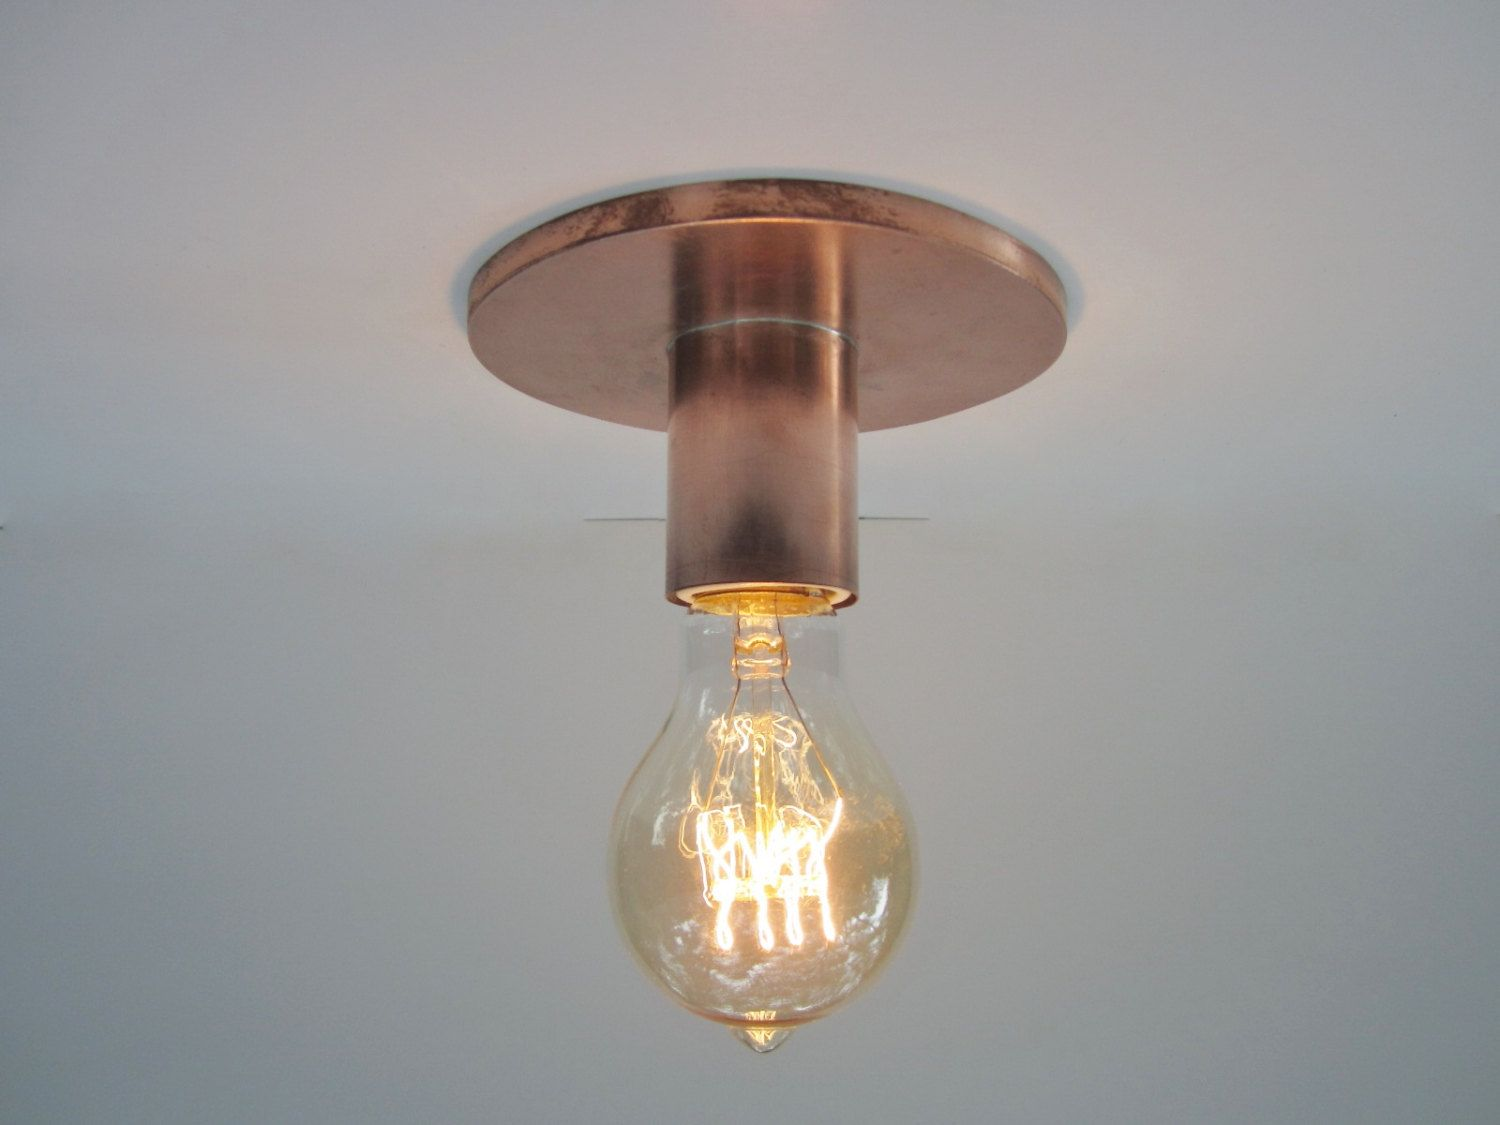 Copper Minimalist Ceiling Light Or Wall Sconce Industrial Etsy Flush Mount Ceiling Lights Exposed Bulb Ceiling Lights